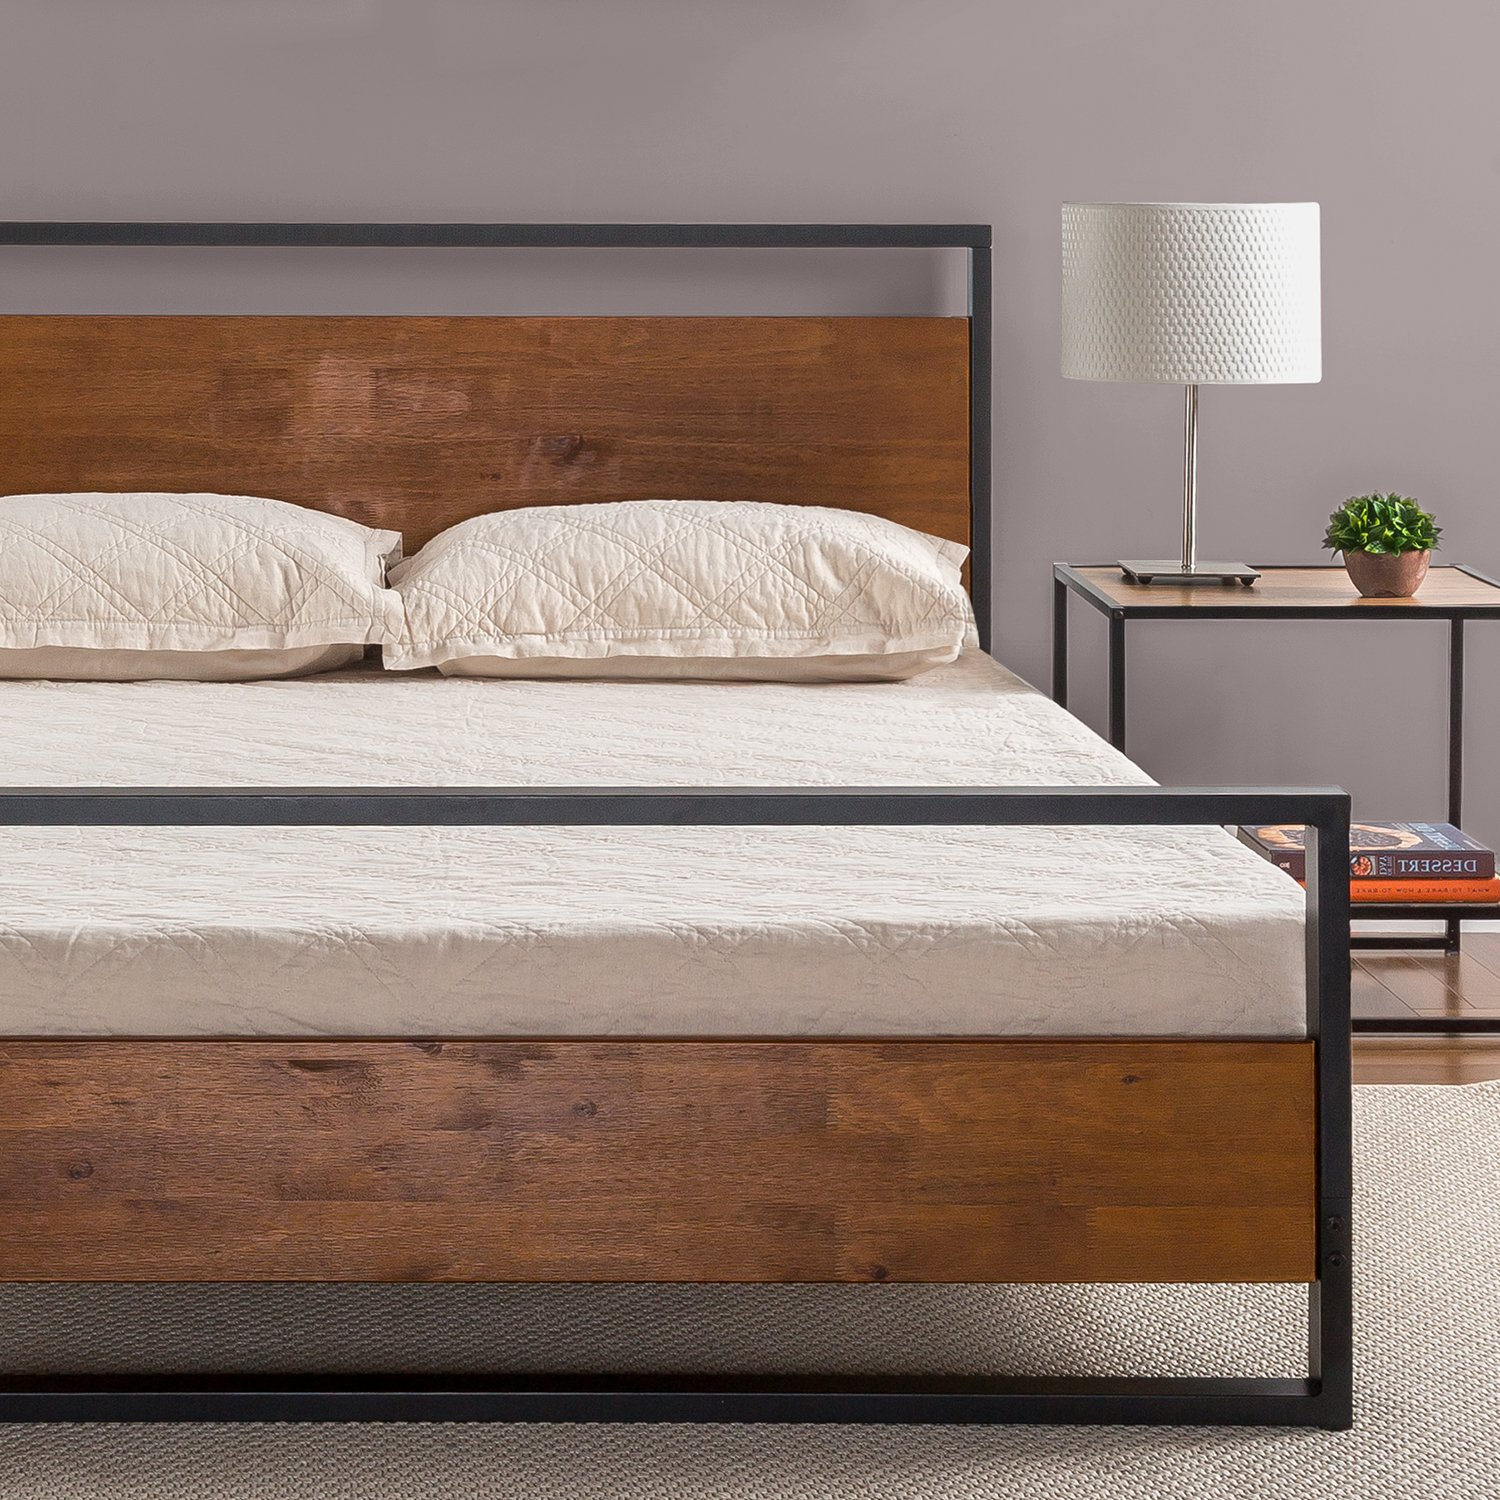 Zinus Suzanne Metal and Wood Platform Bed with Headboard and Footboard / Box Spring Optional / Wood Slat Support, King by Zinus